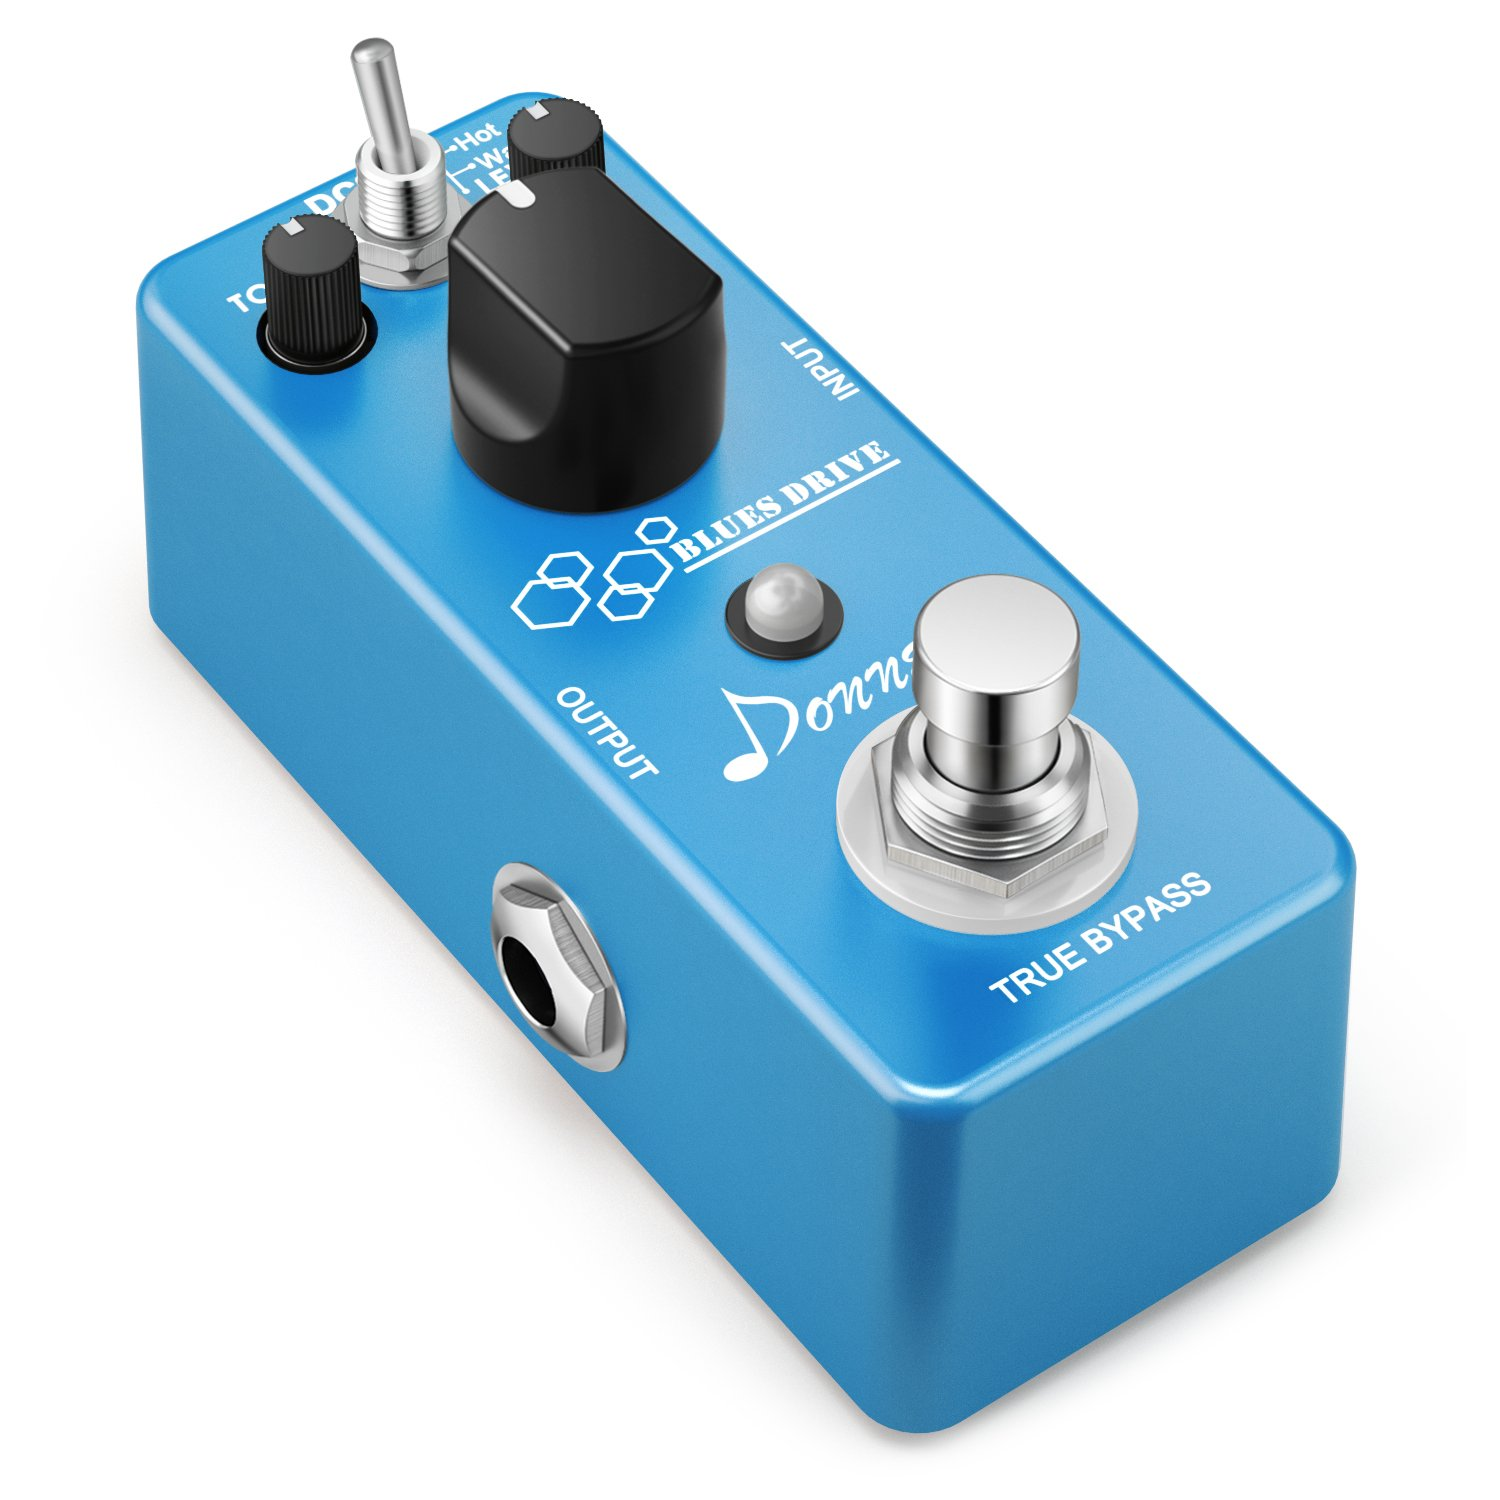 Donner Blues Drive Classical Electronic Vintage Overdrive Guitar Effect Pedal True Bypass Warm/Hot Modes by Donner